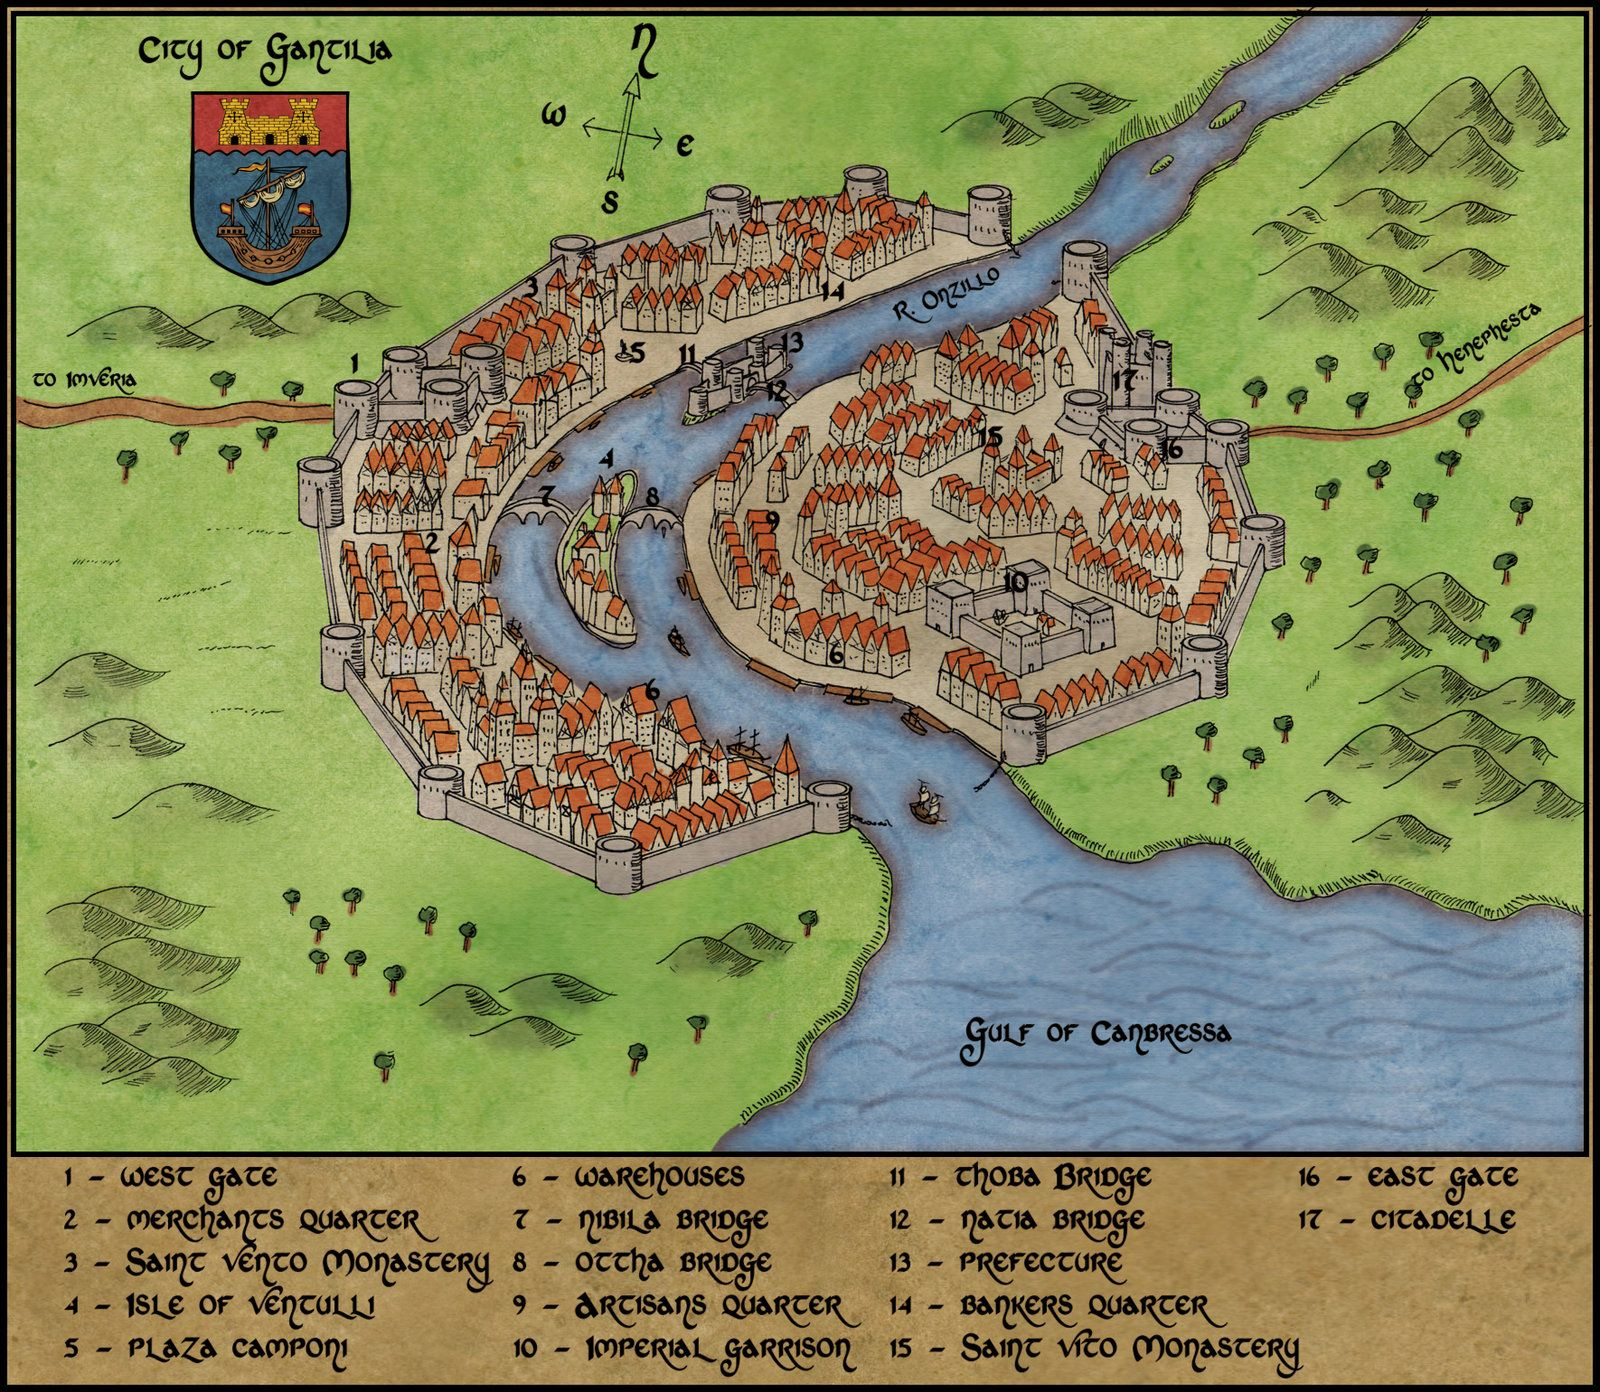 Httpcdn2eefantasymapswp contentuploads201007 medieval city of gwentar feel free to use this picter but if u do leave me a comment pls and tell me where you gnna use it its updated version of gumiabroncs Images